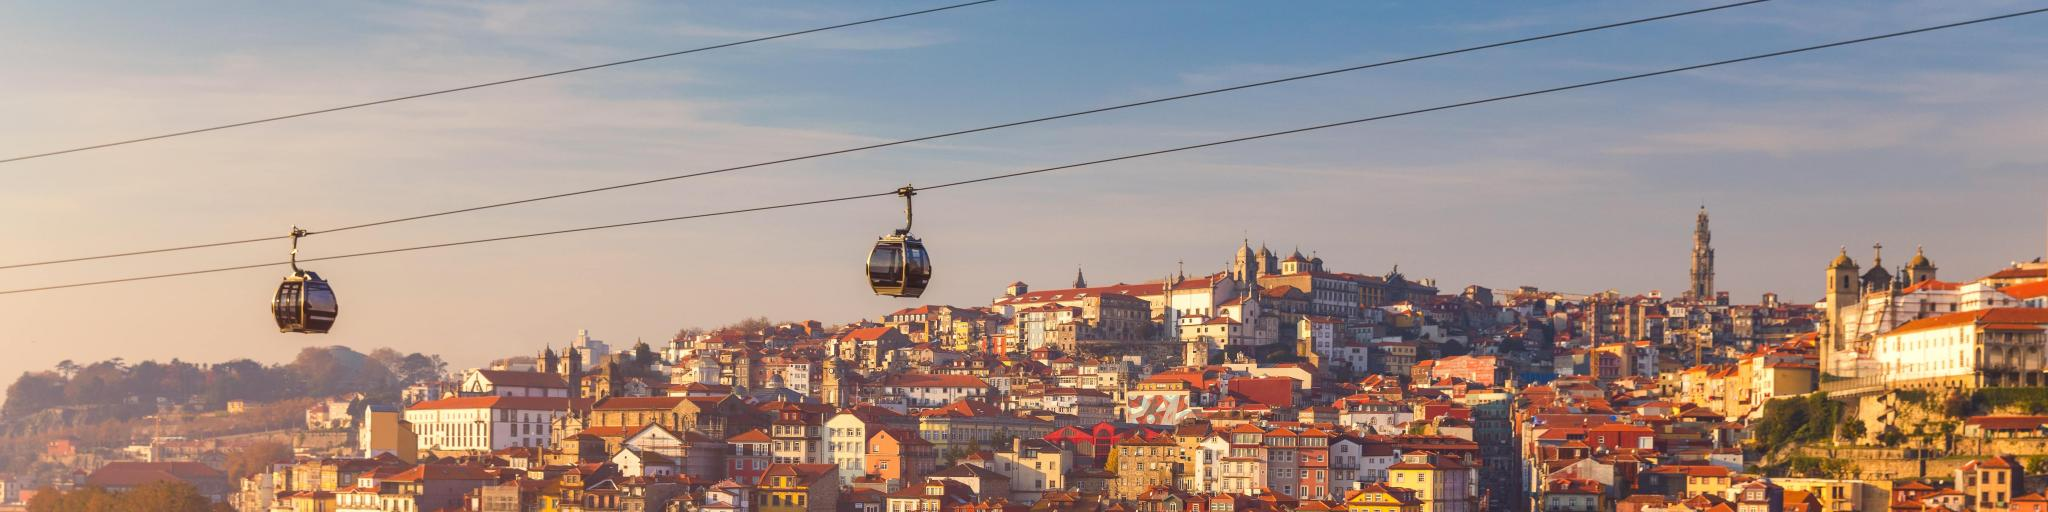 Colourful houses with red roof tiles in Porto, Portugal, with a cable car going overhead